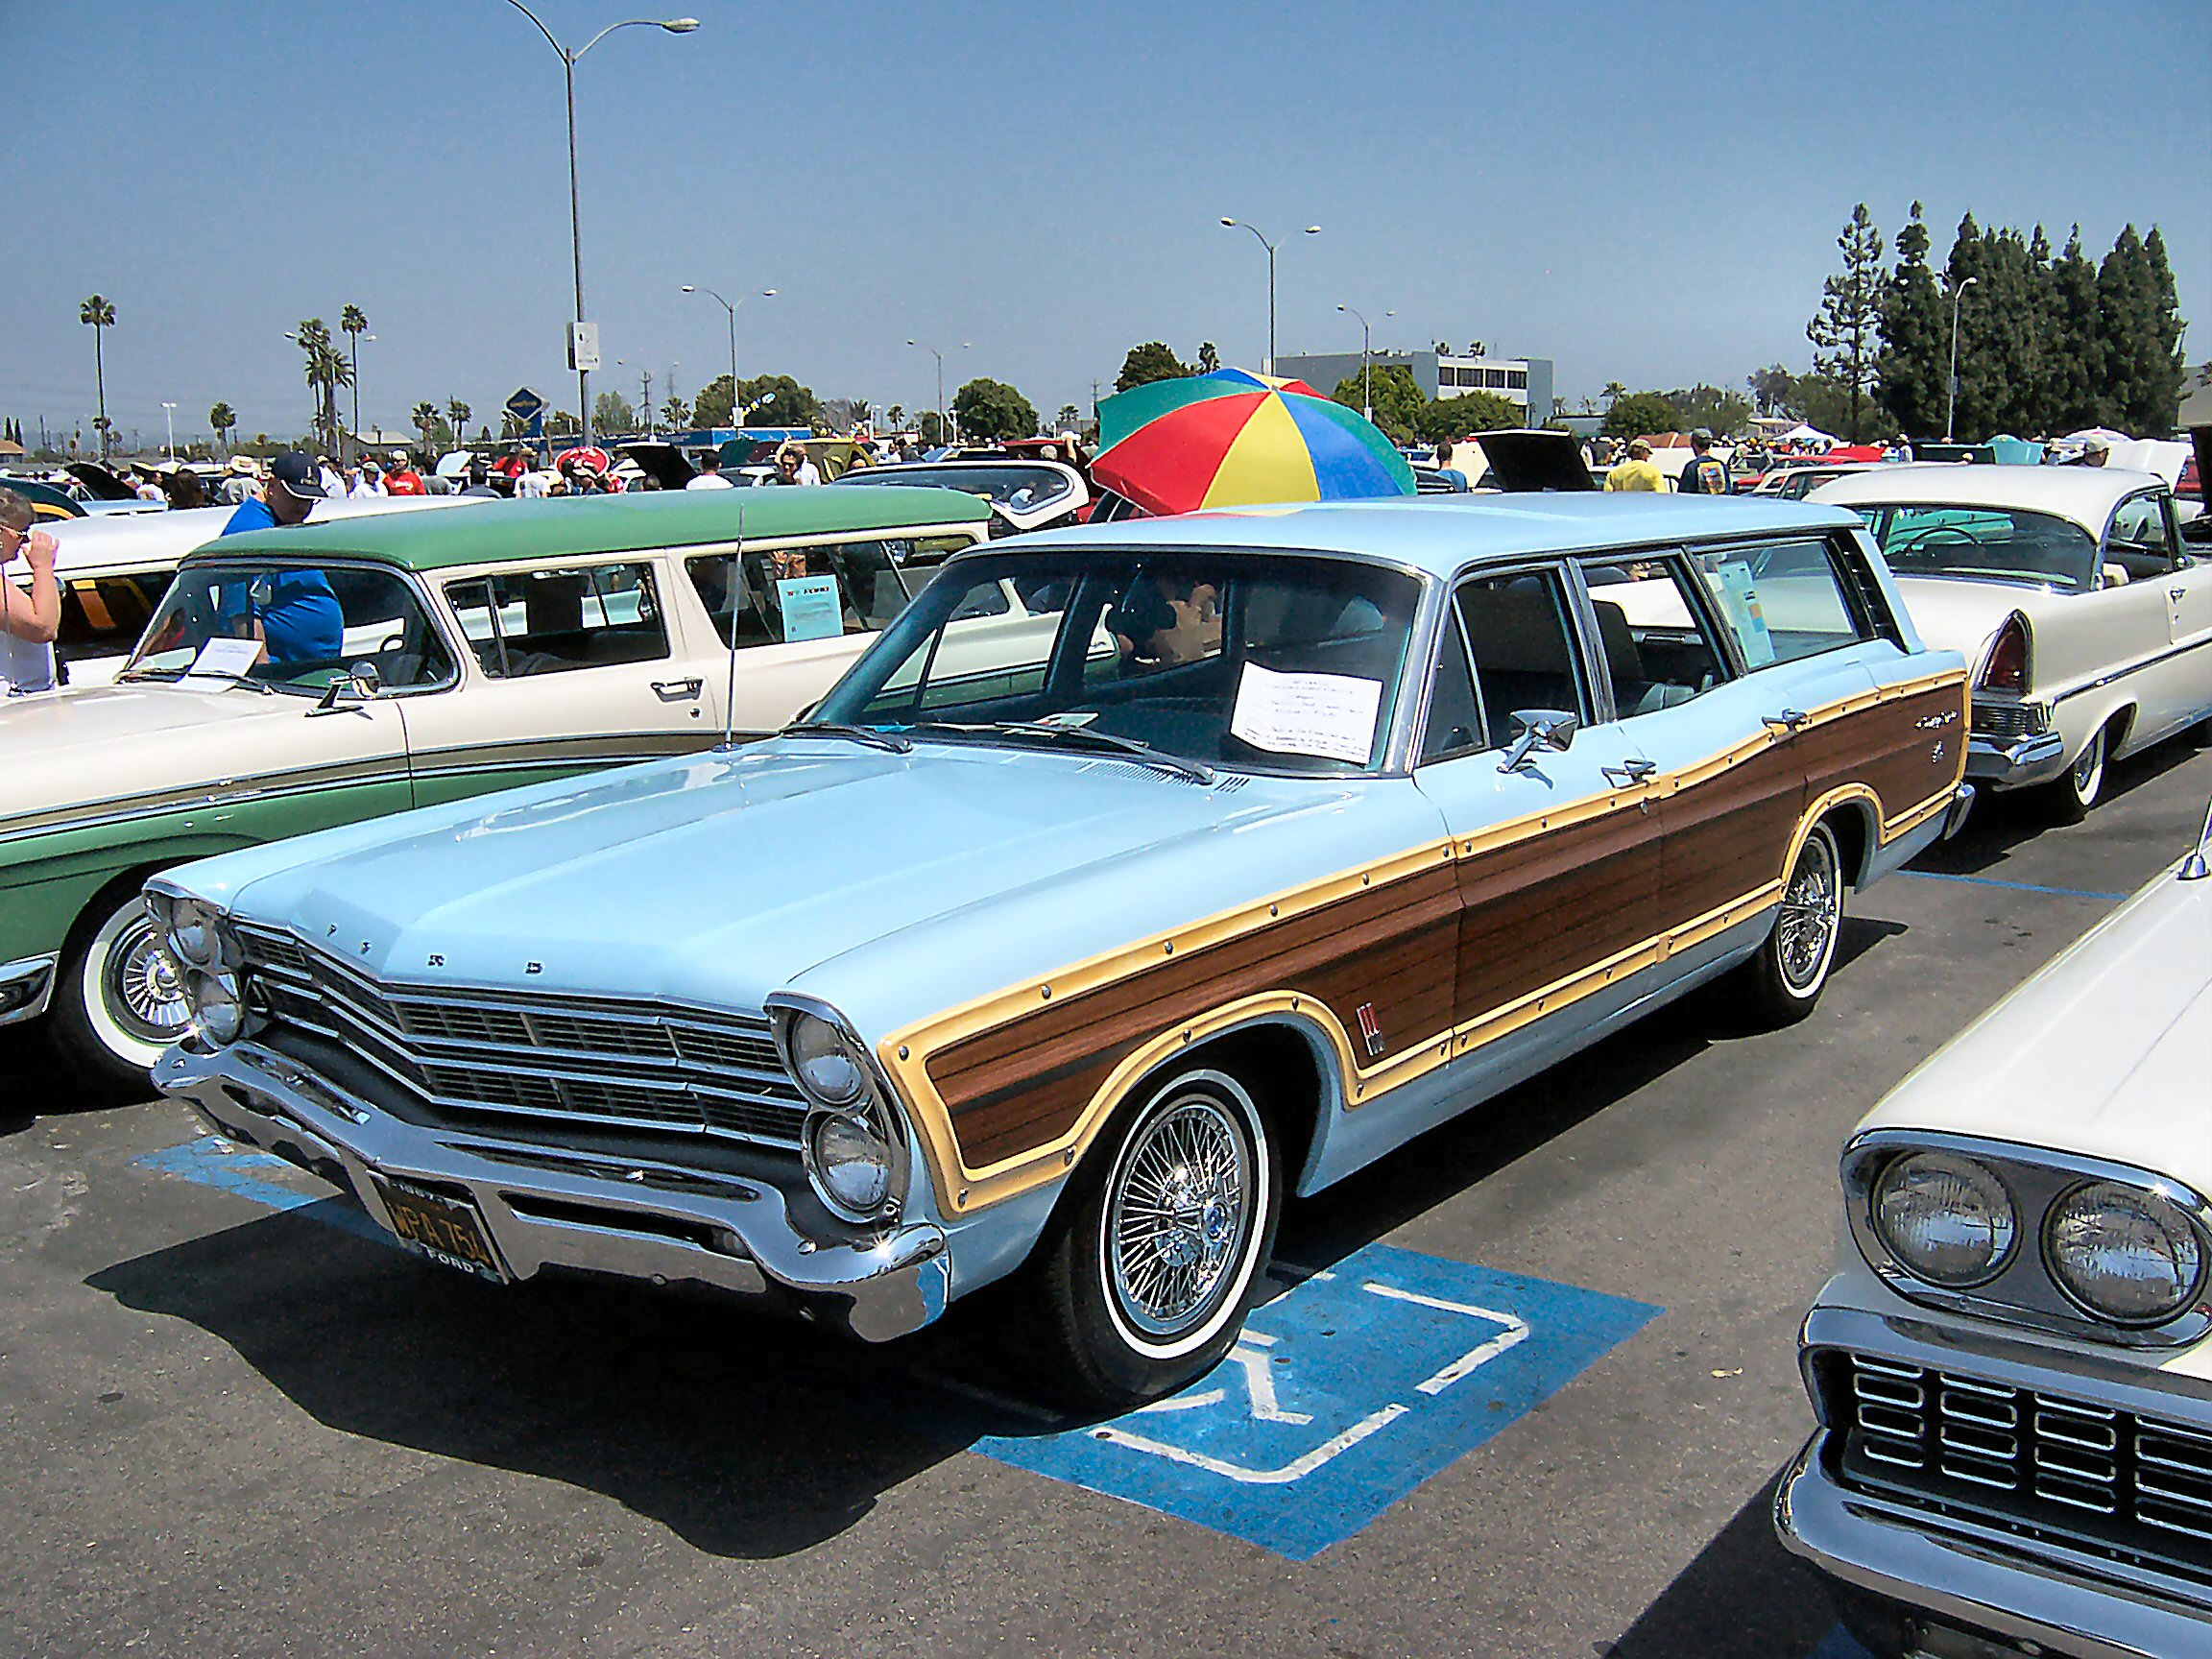 1000+ images about STATION WAGON! on Pinterest | Station ...